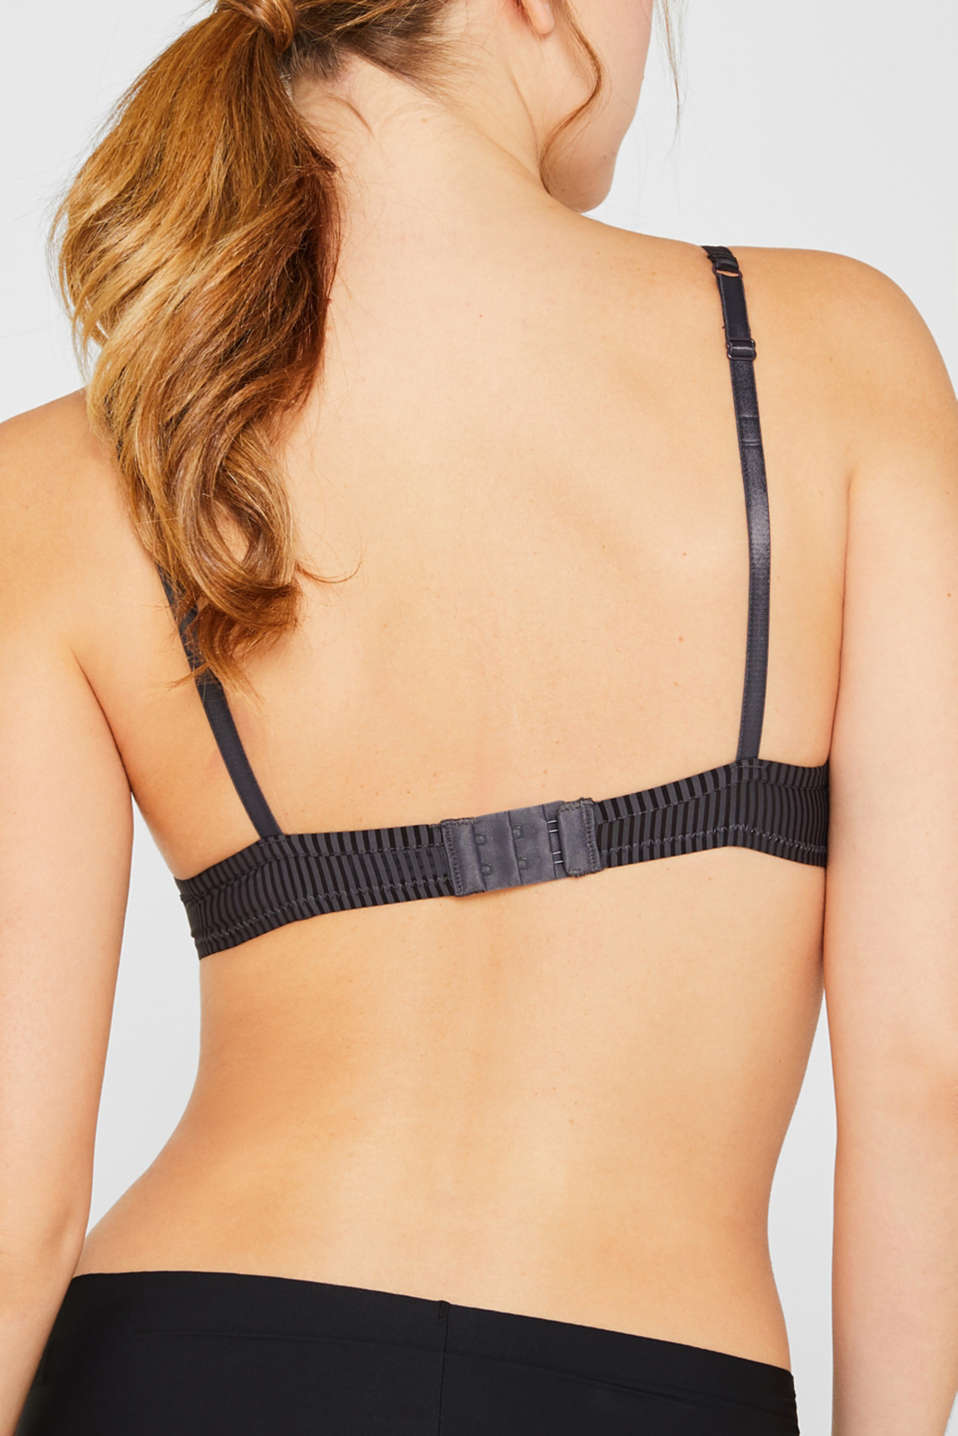 Push-up bra with textured stripes, HOT STONE, detail image number 3